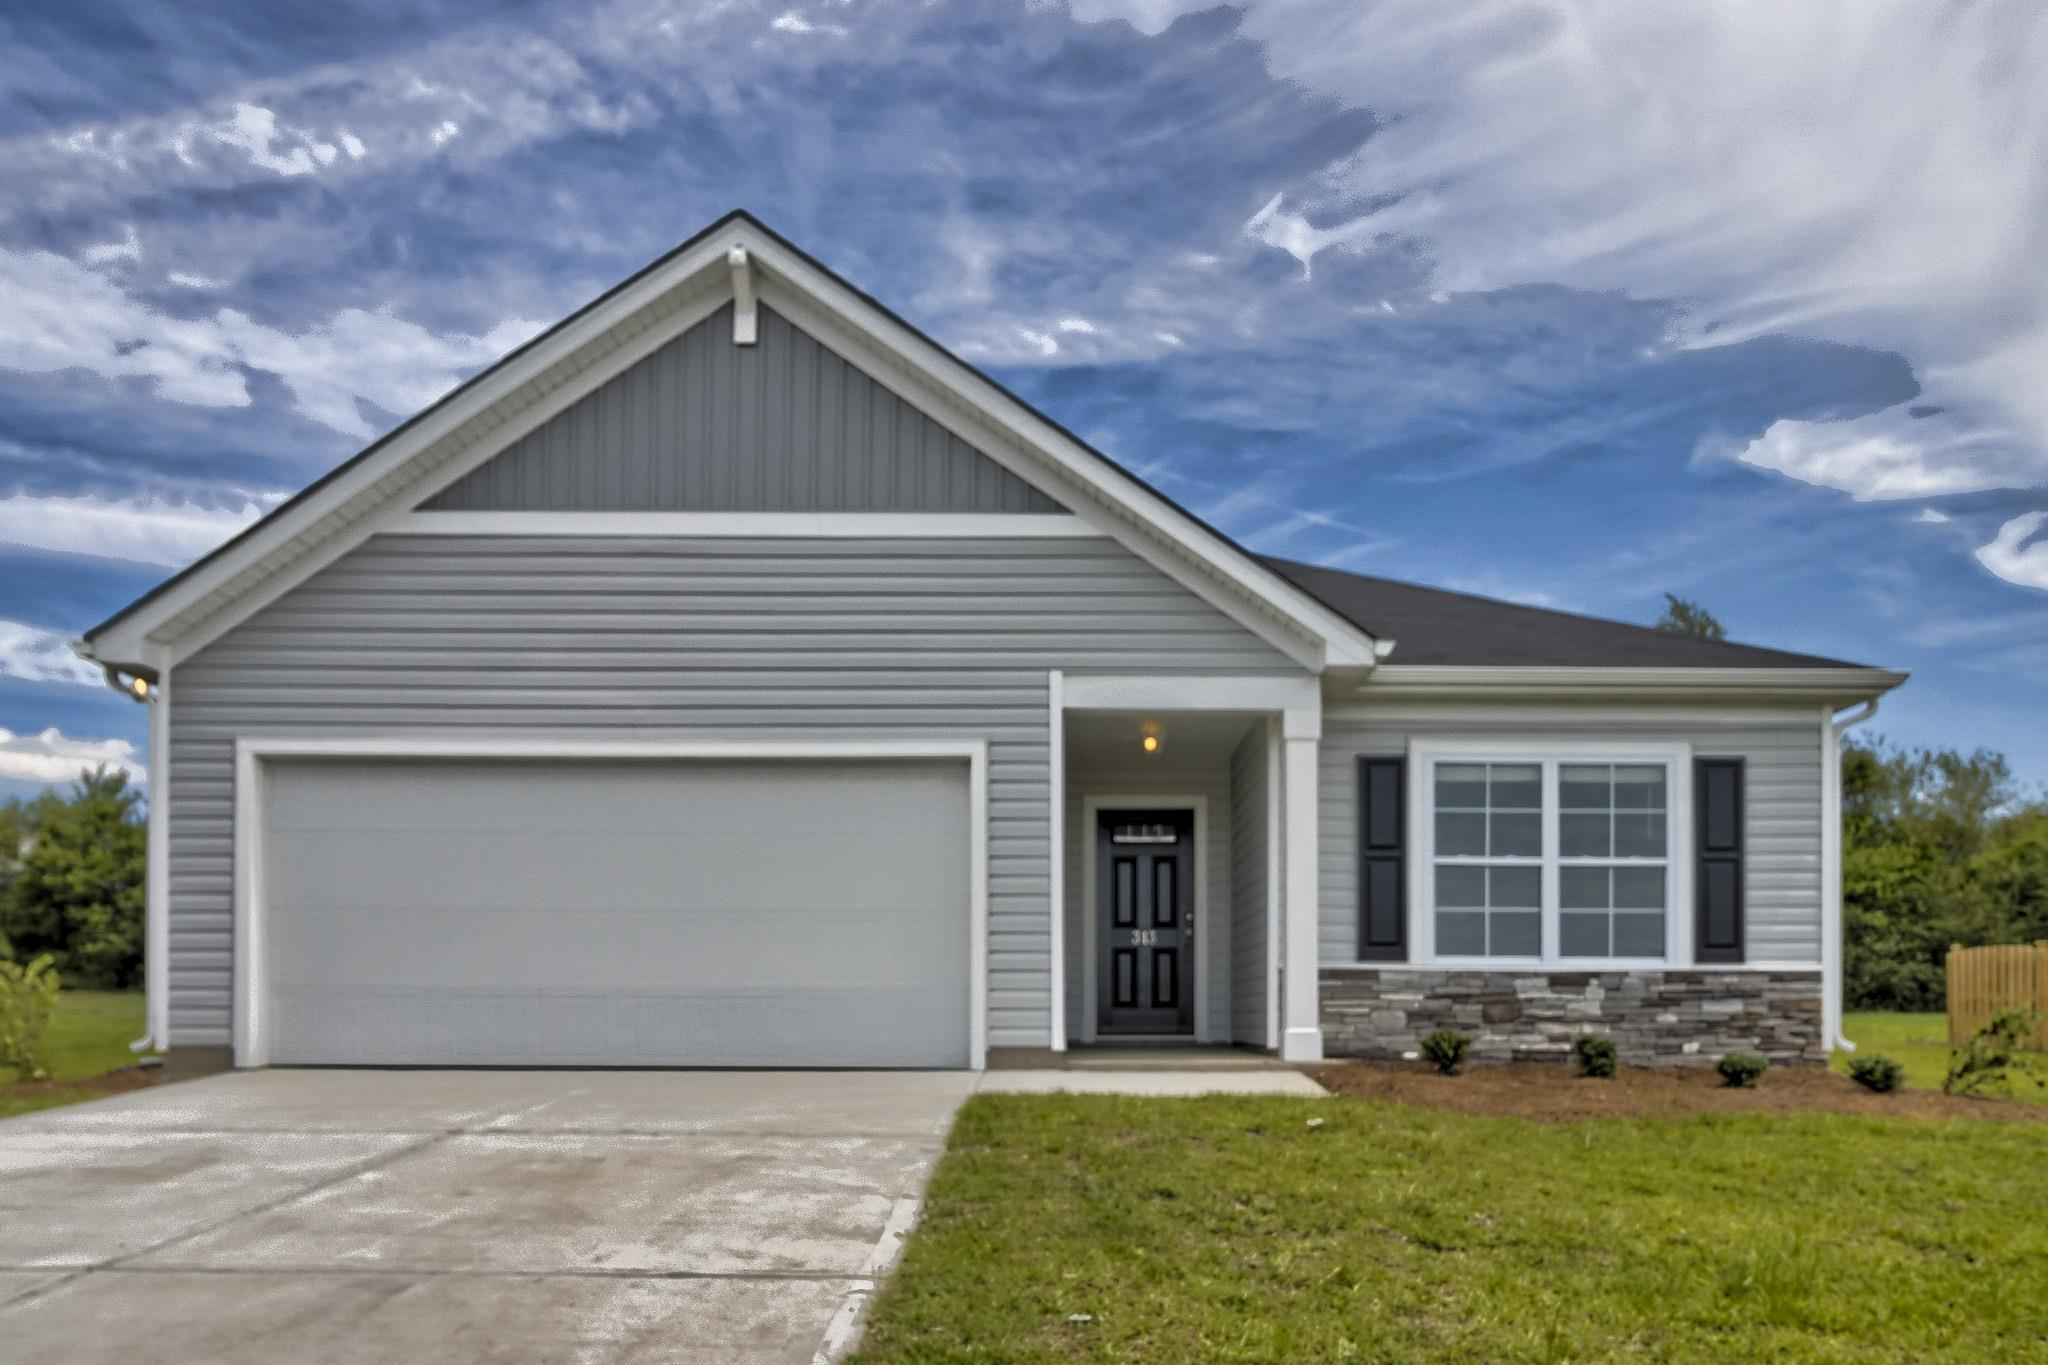 'Cannon Springs' by McGuinn Homes in Columbia